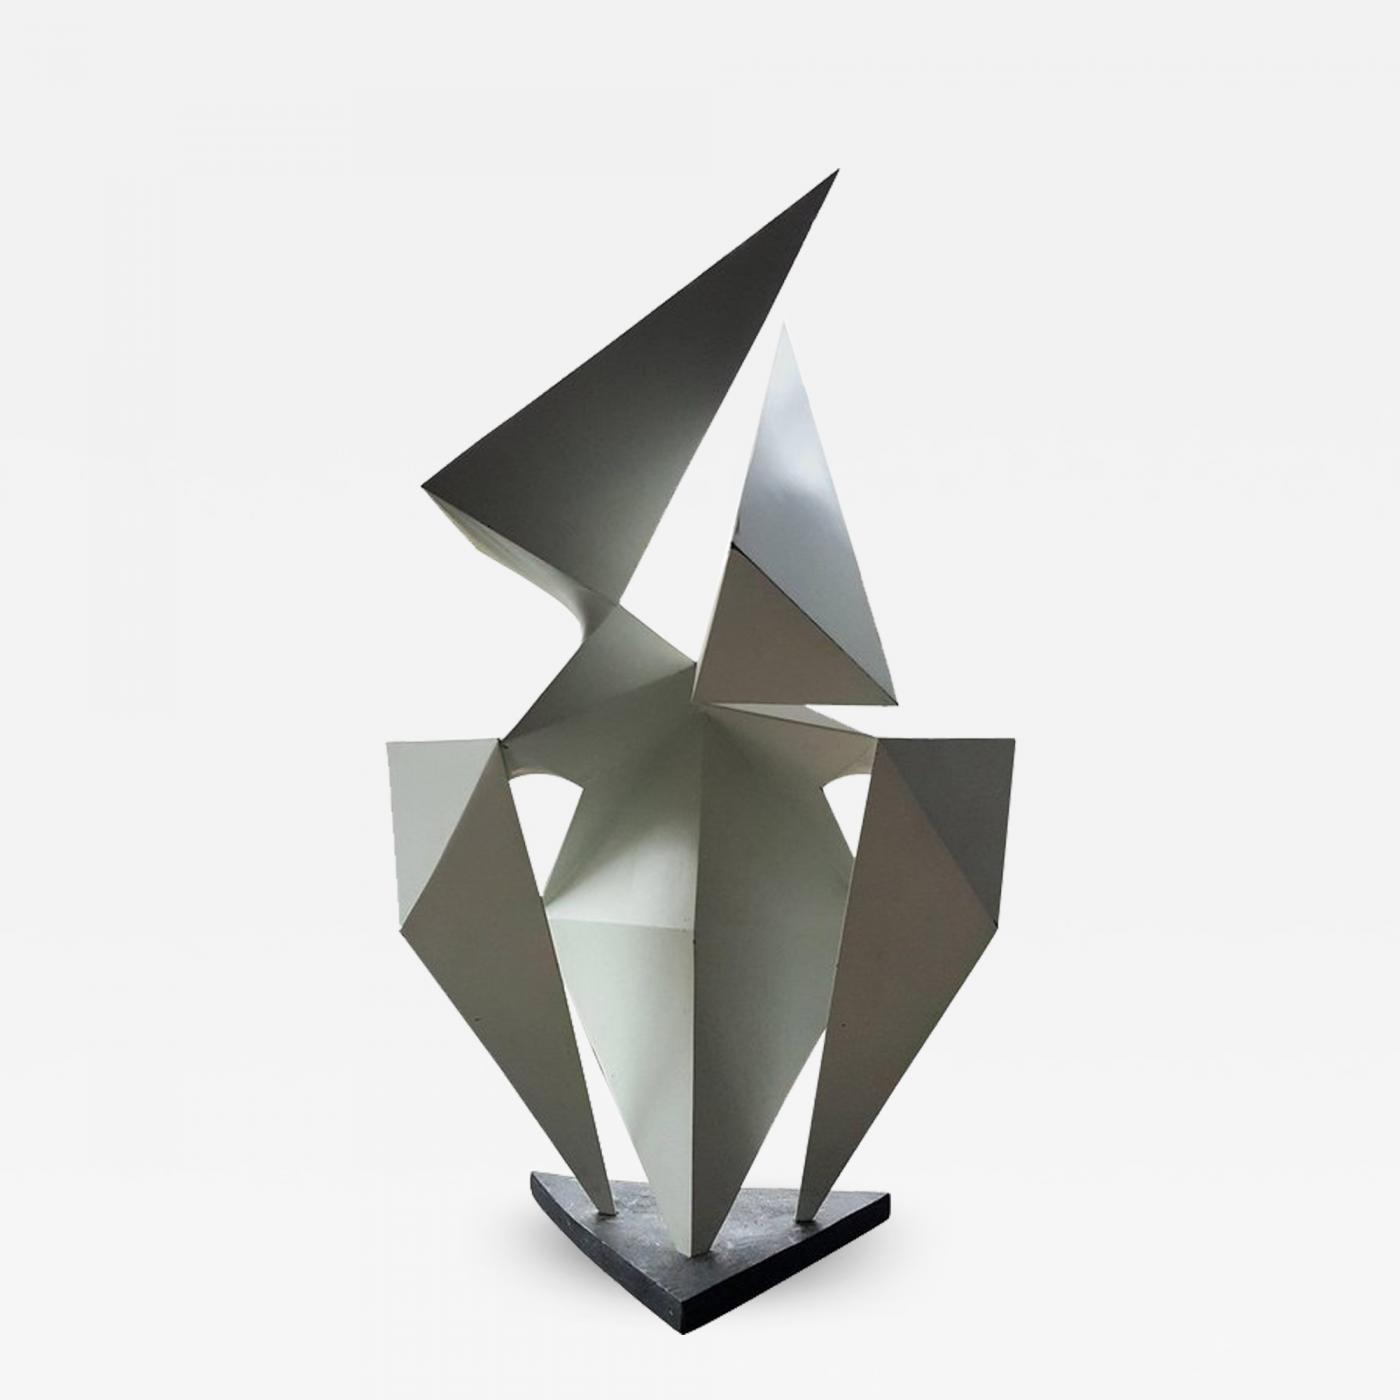 Origami sculpture choice image craft decoration ideas edward hart vintage abstract origami sculpture by artist edward listings decorative arts objects sculpture jeuxipadfo choice jeuxipadfo Choice Image